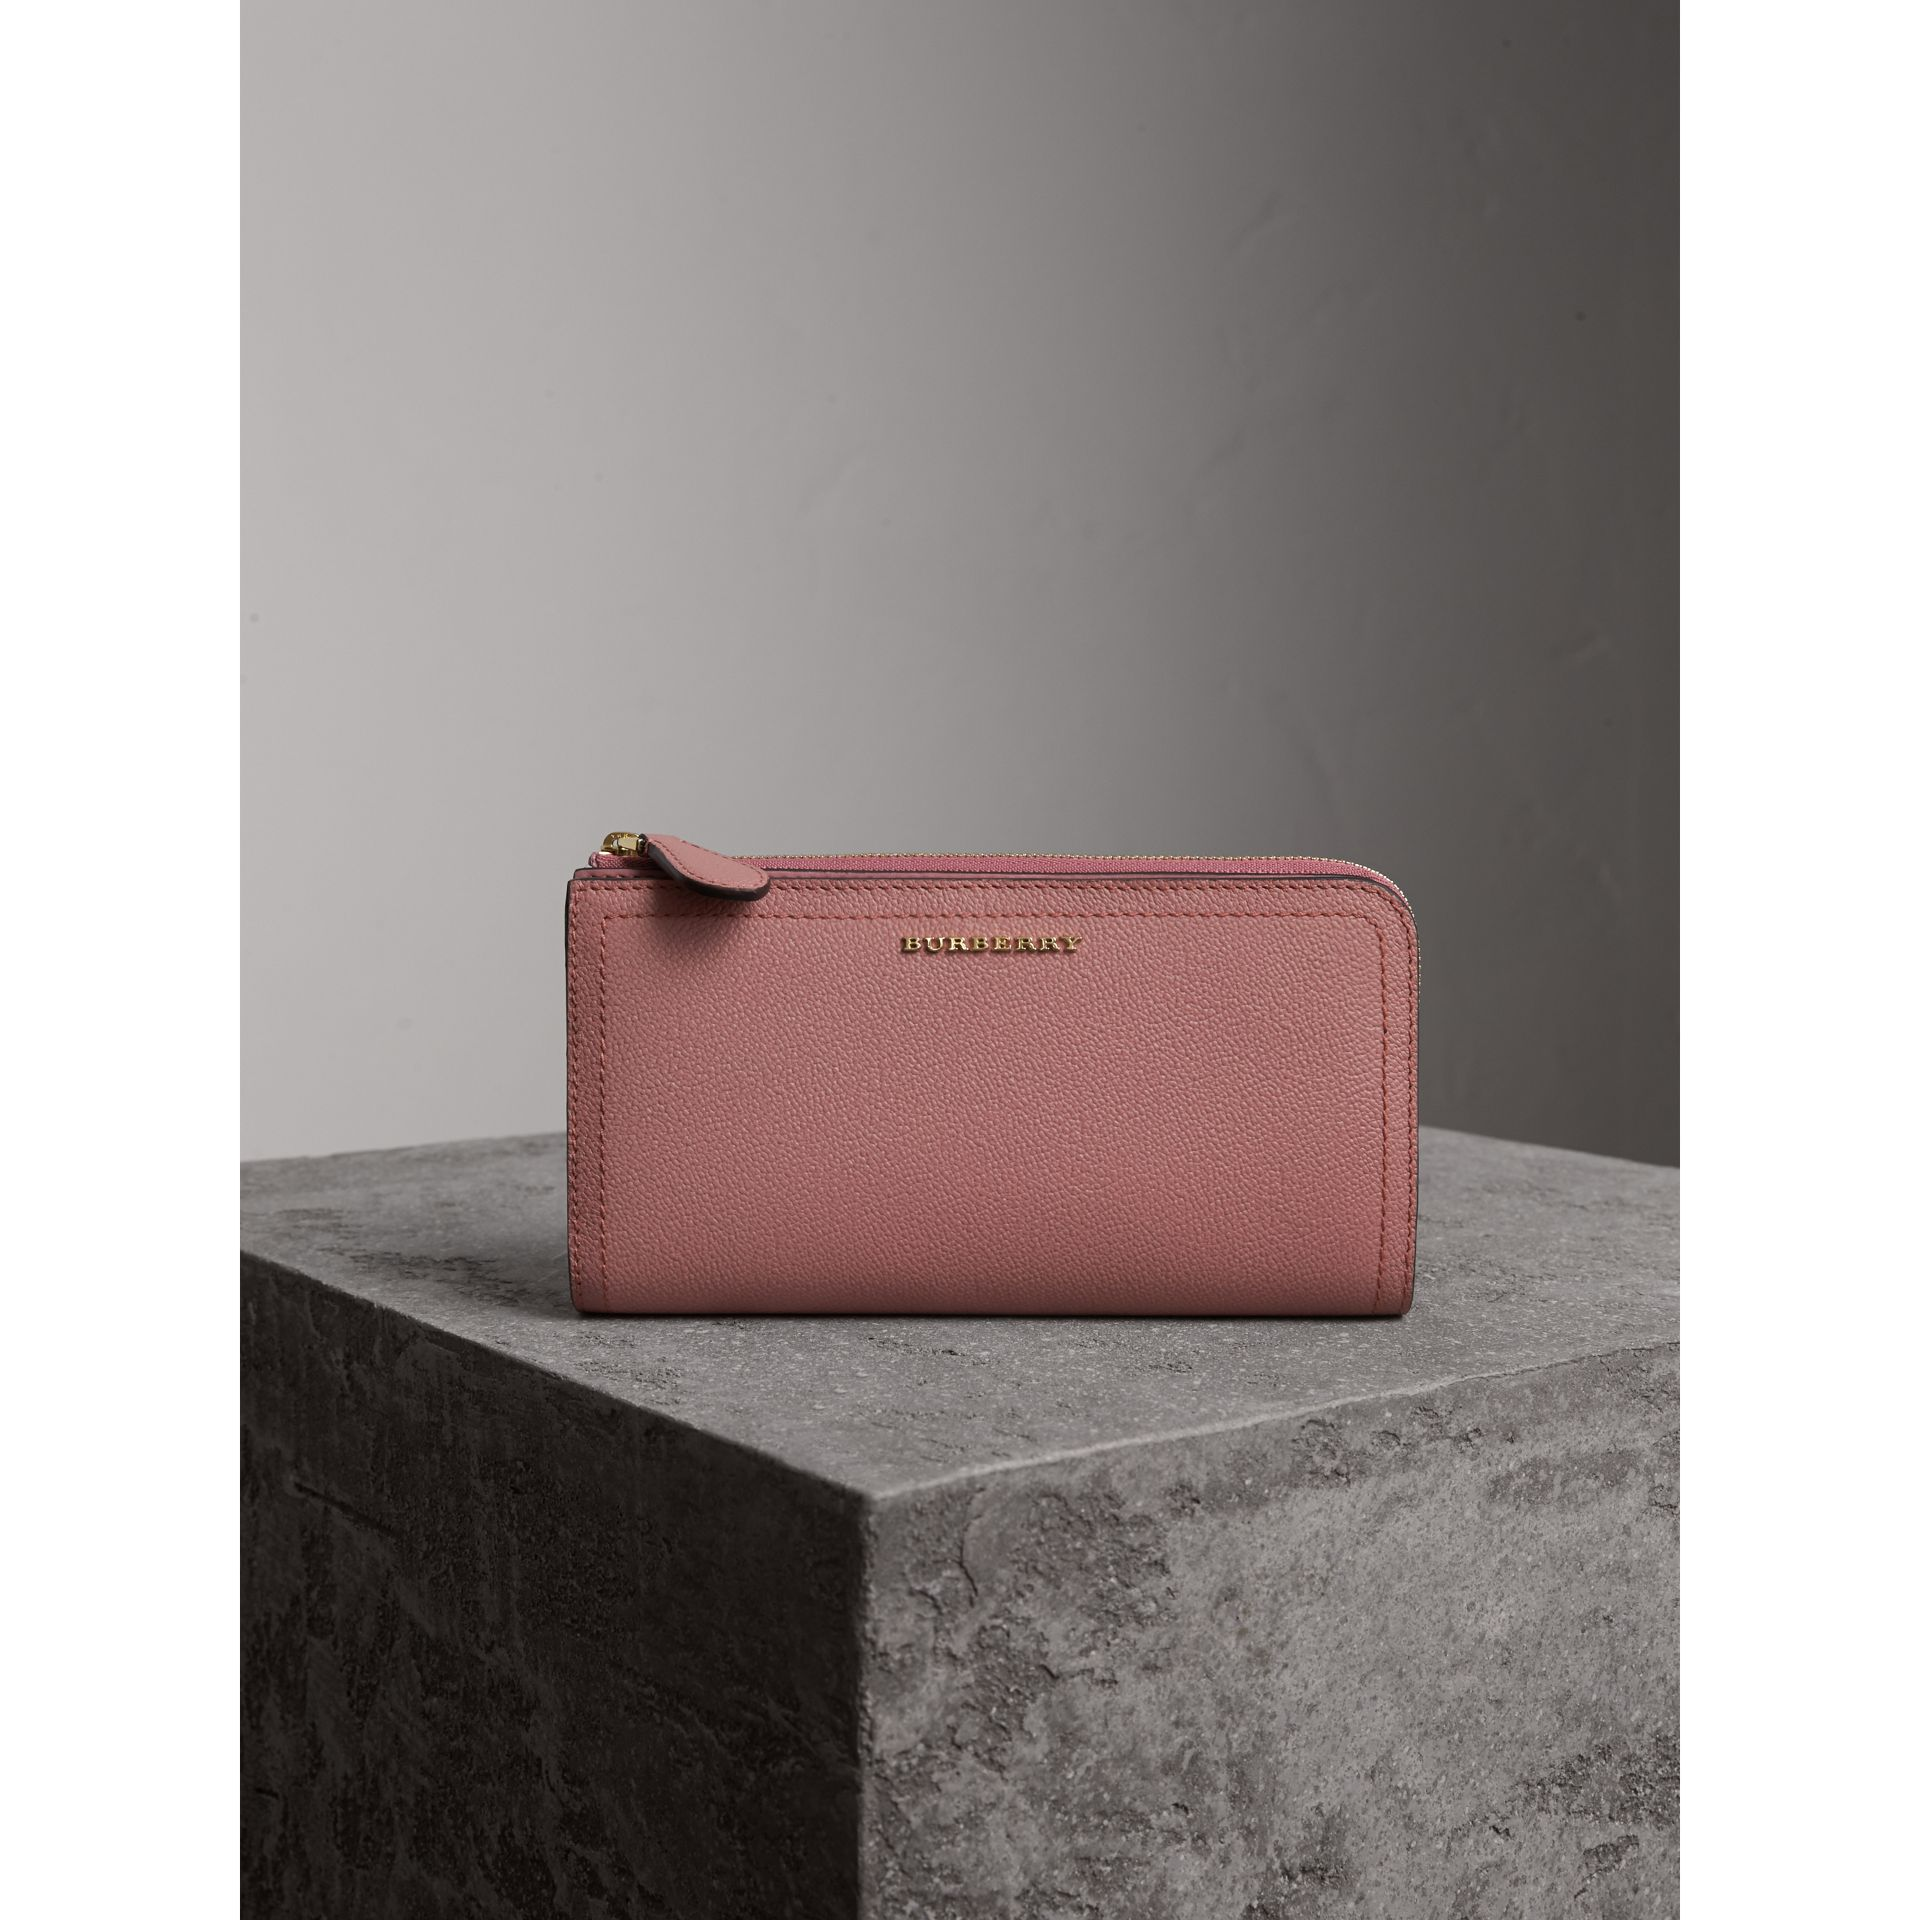 Grainy Leather Ziparound Wallet in Dusty Pink - Women | Burberry - gallery image 5